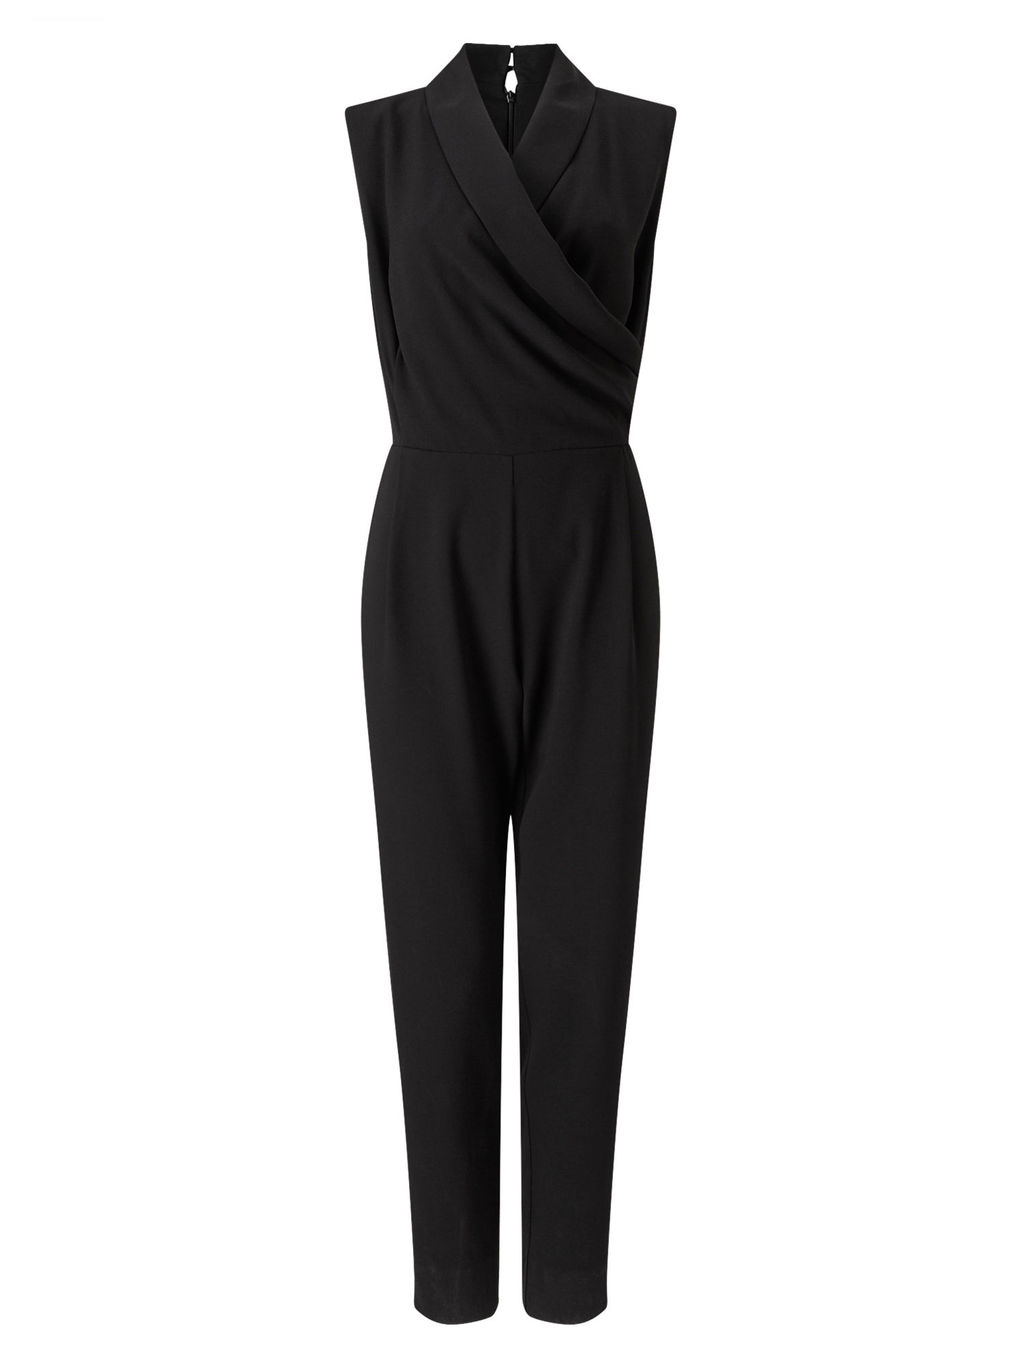 Wrap Top Jumpsuit - length: standard; neckline: v-neck; pattern: plain; sleeve style: sleeveless; predominant colour: black; occasions: evening; fit: body skimming; fibres: polyester/polyamide - 100%; sleeve length: sleeveless; style: jumpsuit; pattern type: fabric; texture group: jersey - stretchy/drapey; season: s/s 2016; wardrobe: event